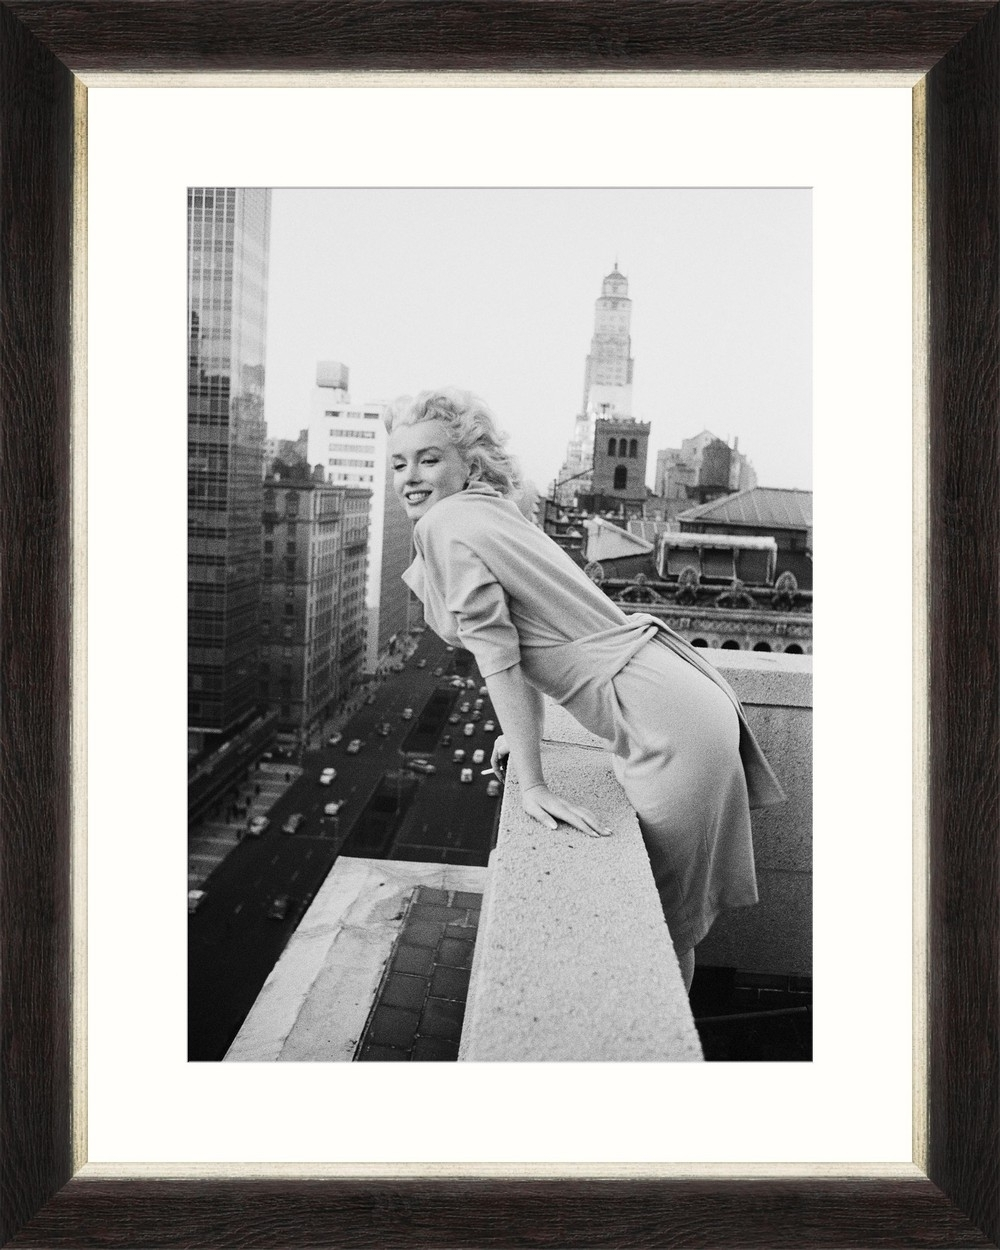 Tablou Framed Art Marilyn-40 x 50 cm imagine